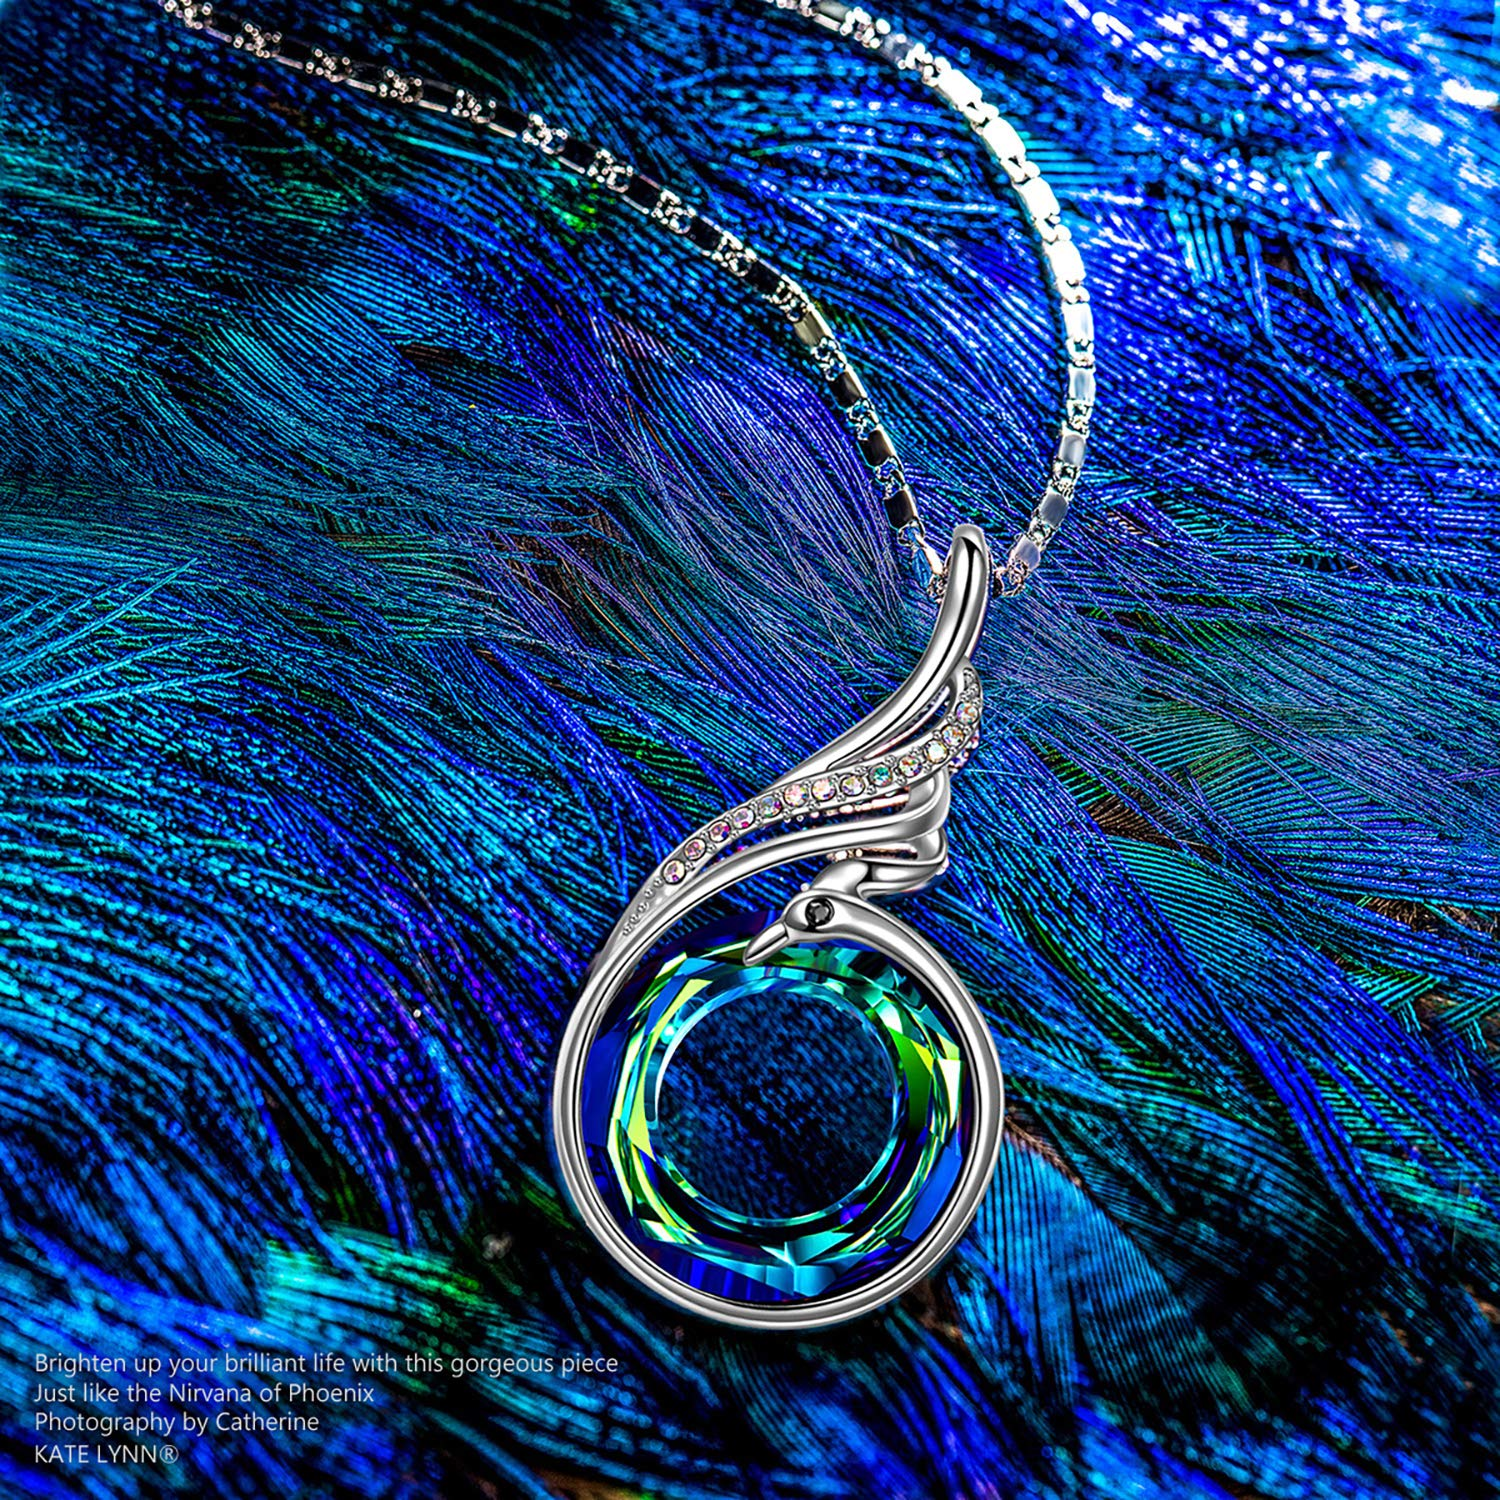 Gifts for Mom /& Gifts for Women Nirvana of Phoenix Necklaces for Women Christmas Gifts for Women Gifts for Grandma Gifts Jewelry for Women with Swarovski Crystals Birthday Gifts for Women